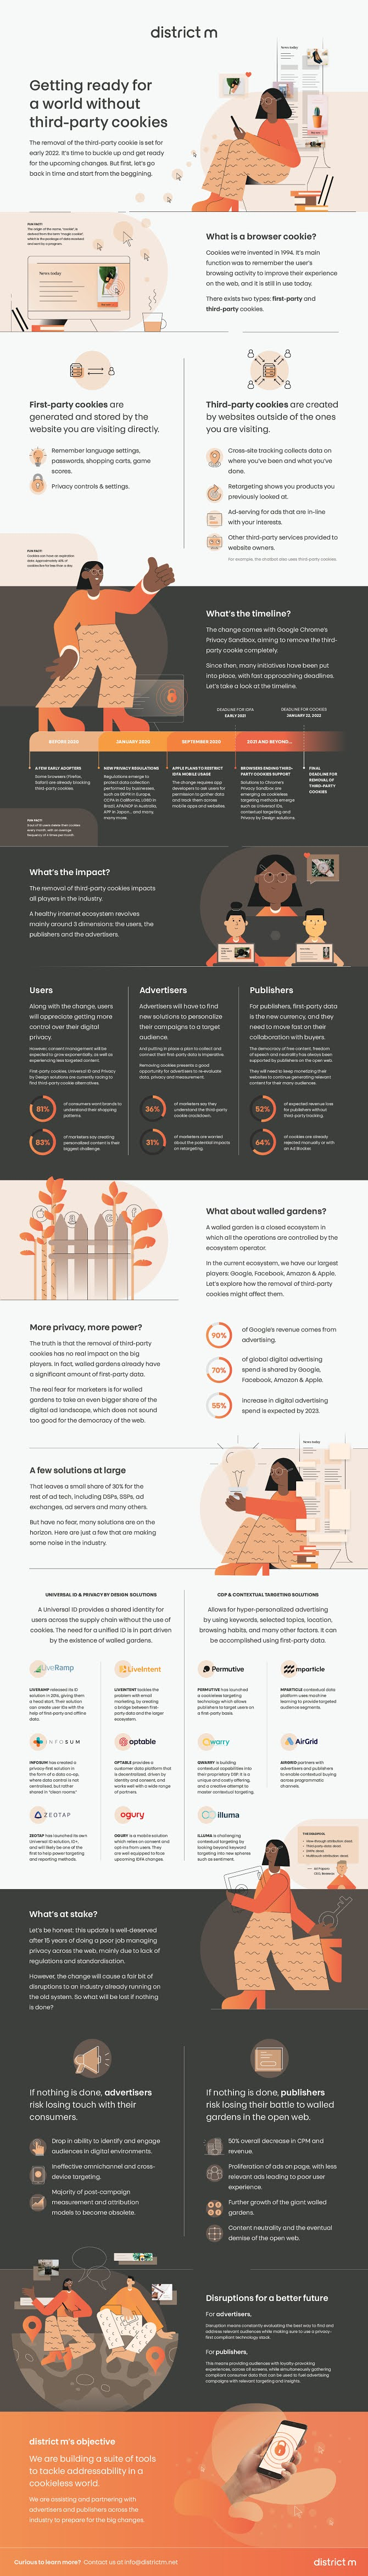 Getting Ready For a World Without Third-Party Cookies #infographic #Internet #Third Party Cookies #First Party Cookies